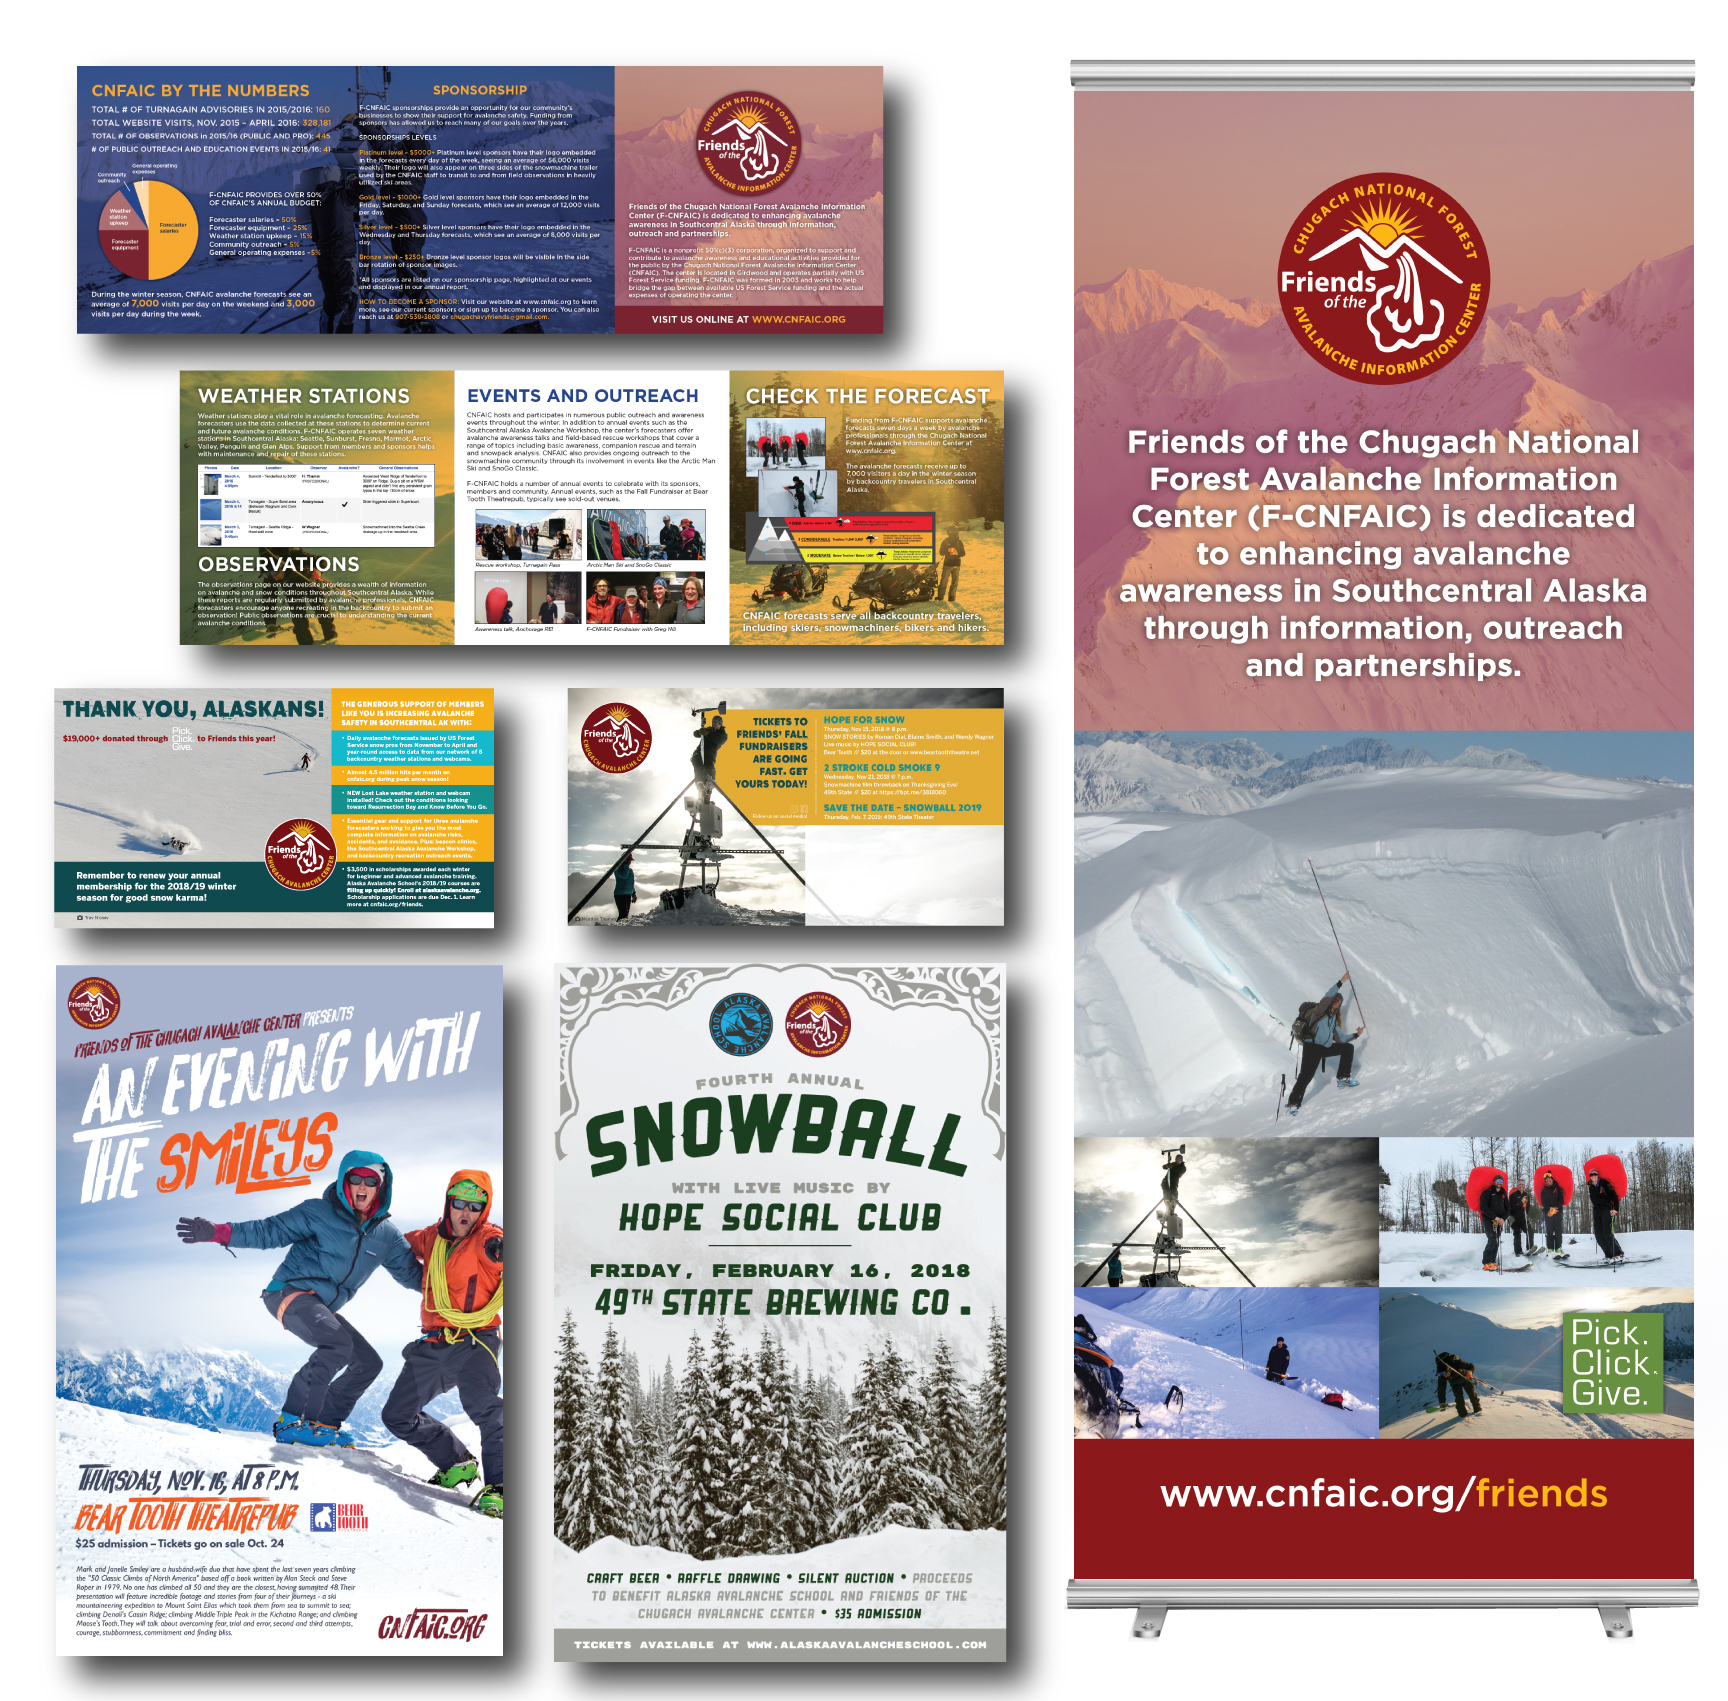 Friends of the Chugach Avalanche Center